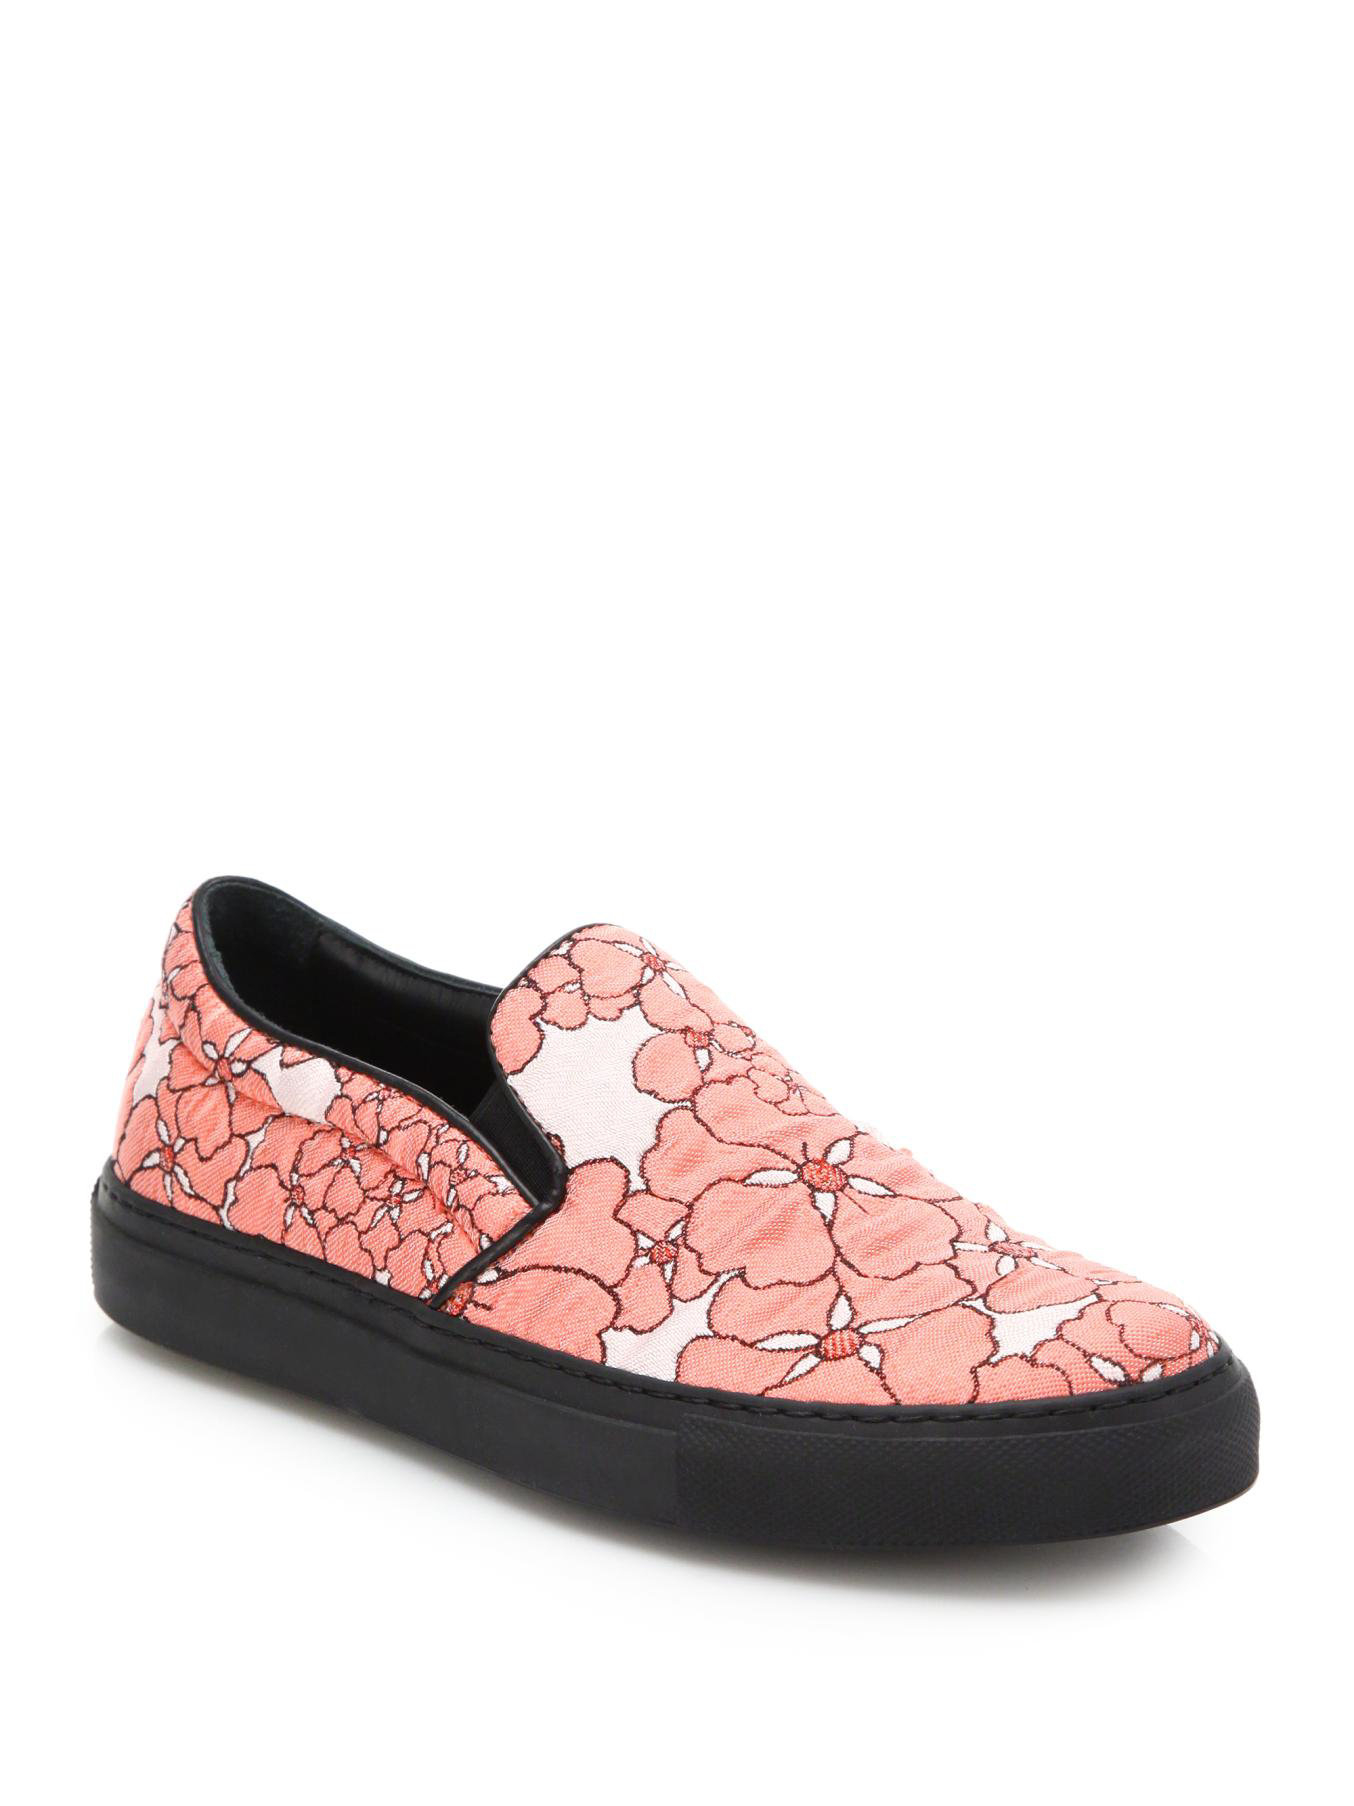 Giamba Floral Printed Slip-On Sneakers fast delivery h8MwlKuFbt